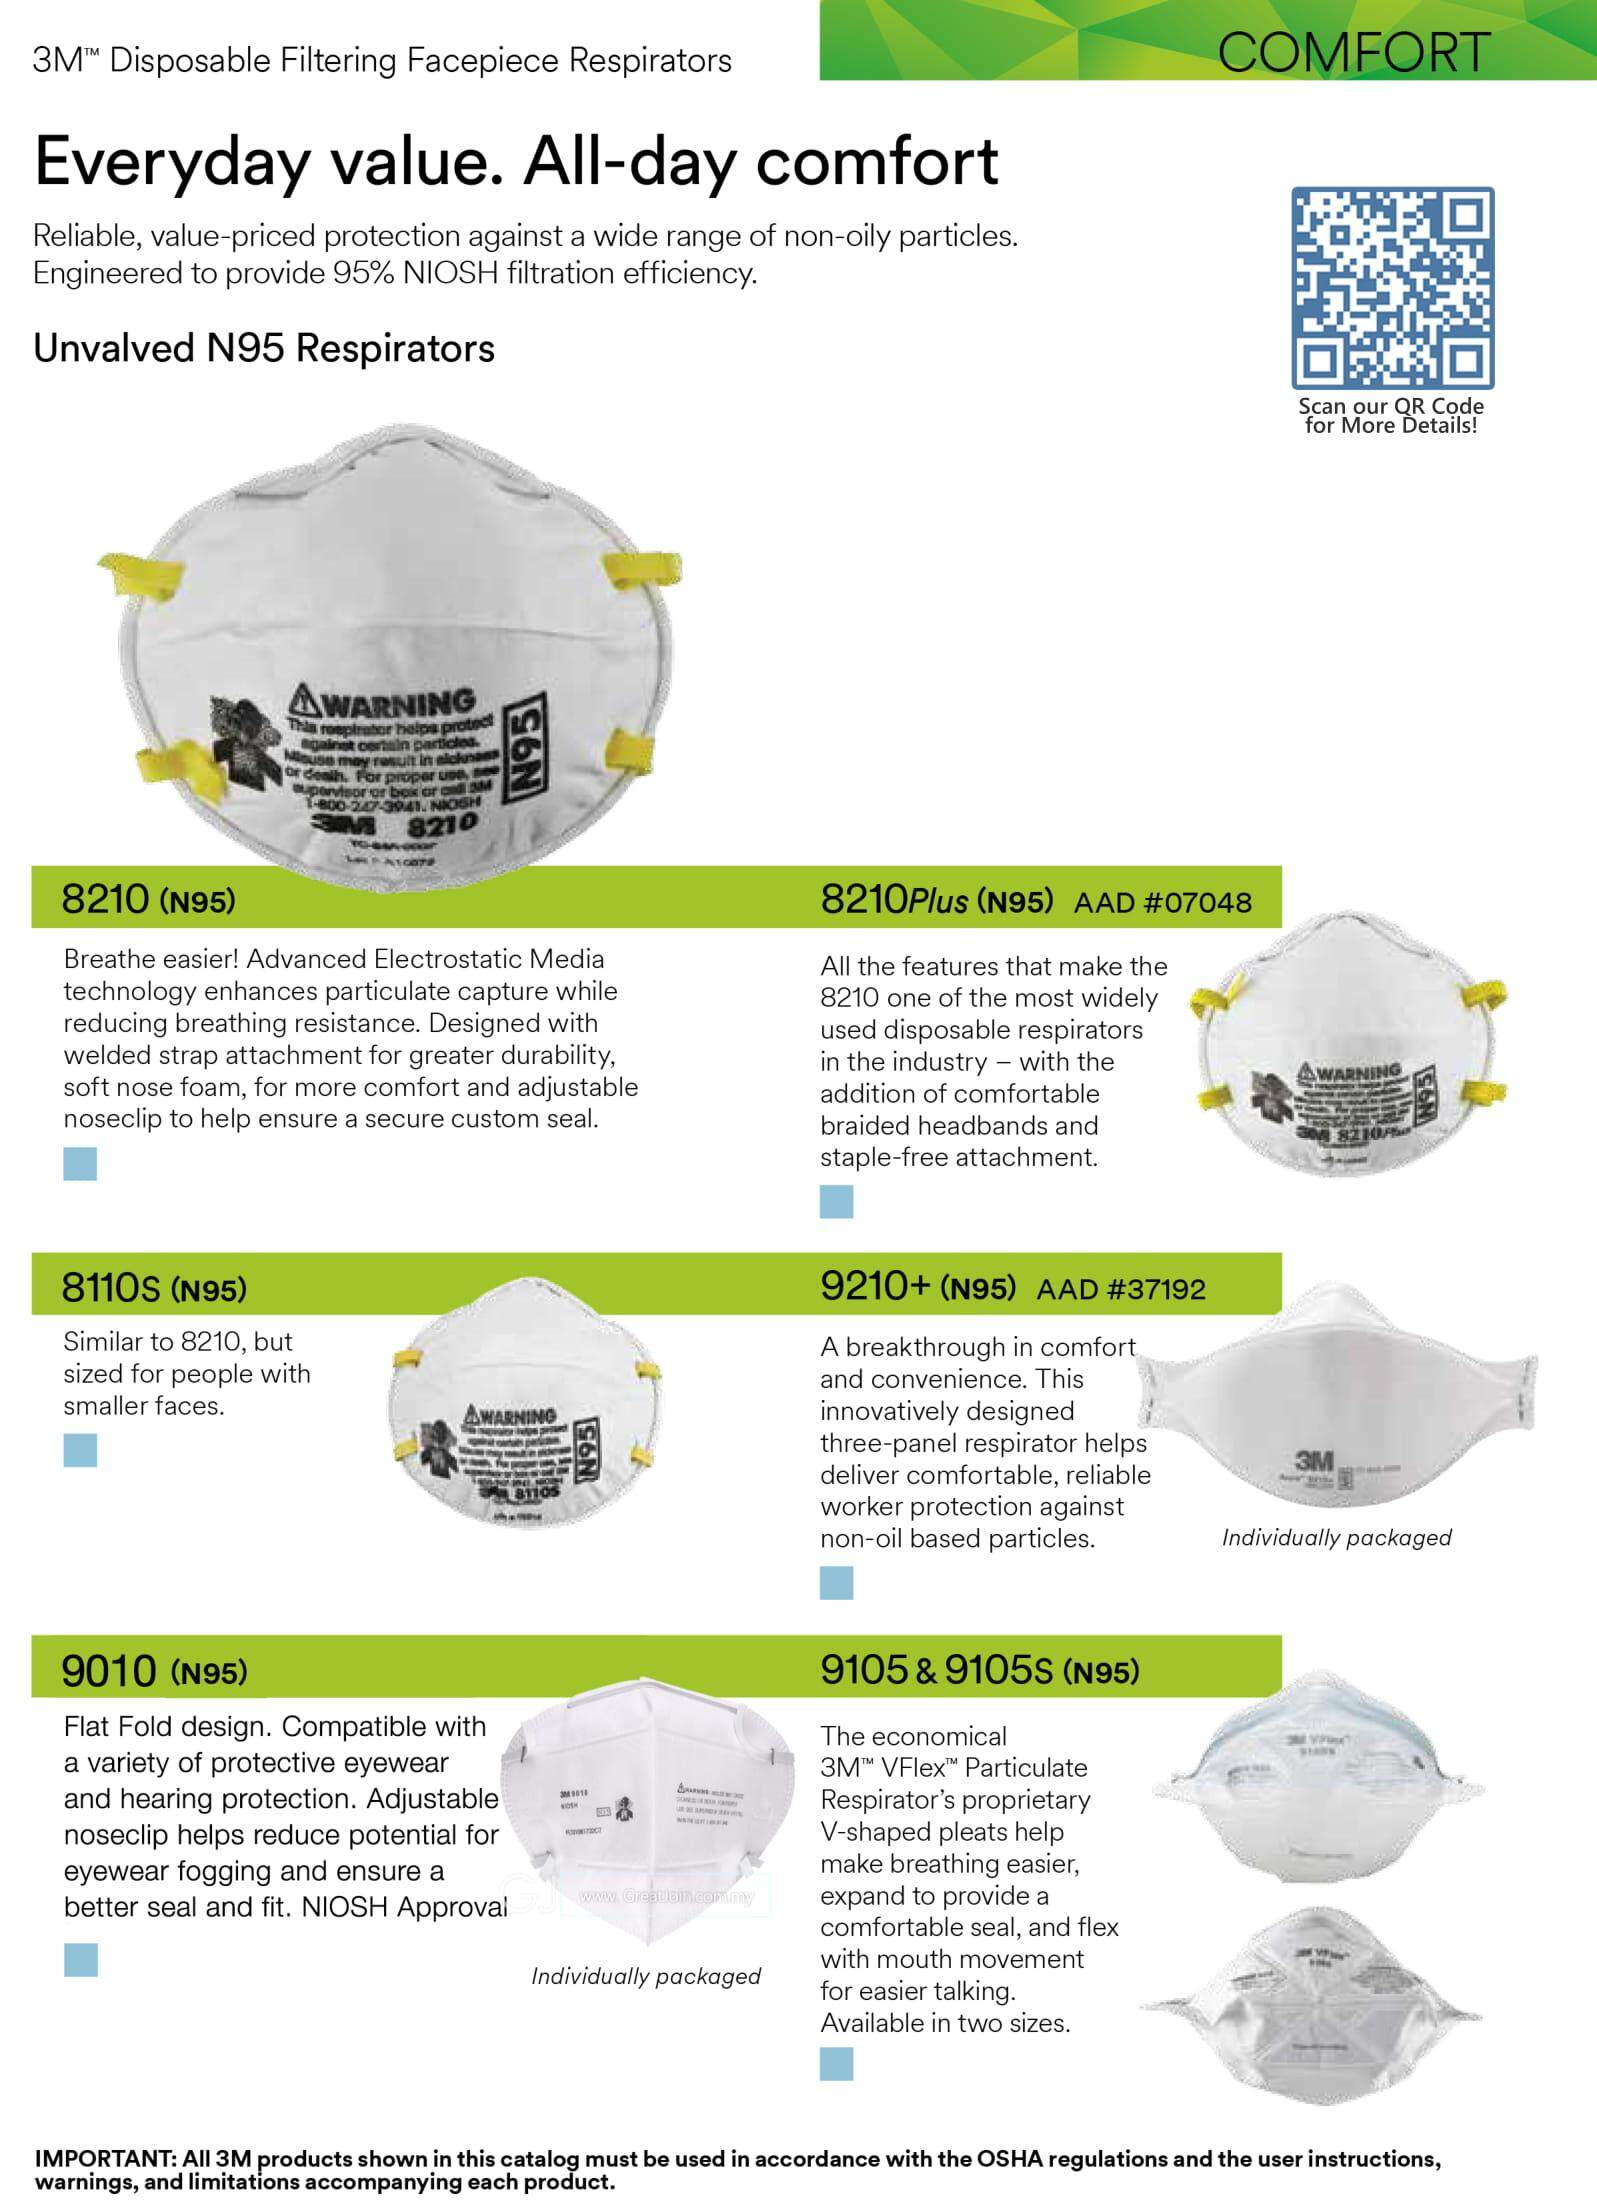 Dust - Oringinal 5 Respirator Mask Niosh 2 Flu N95 Haze Particulate Disposable Approved 9010 Prevention amp; 3m Pm